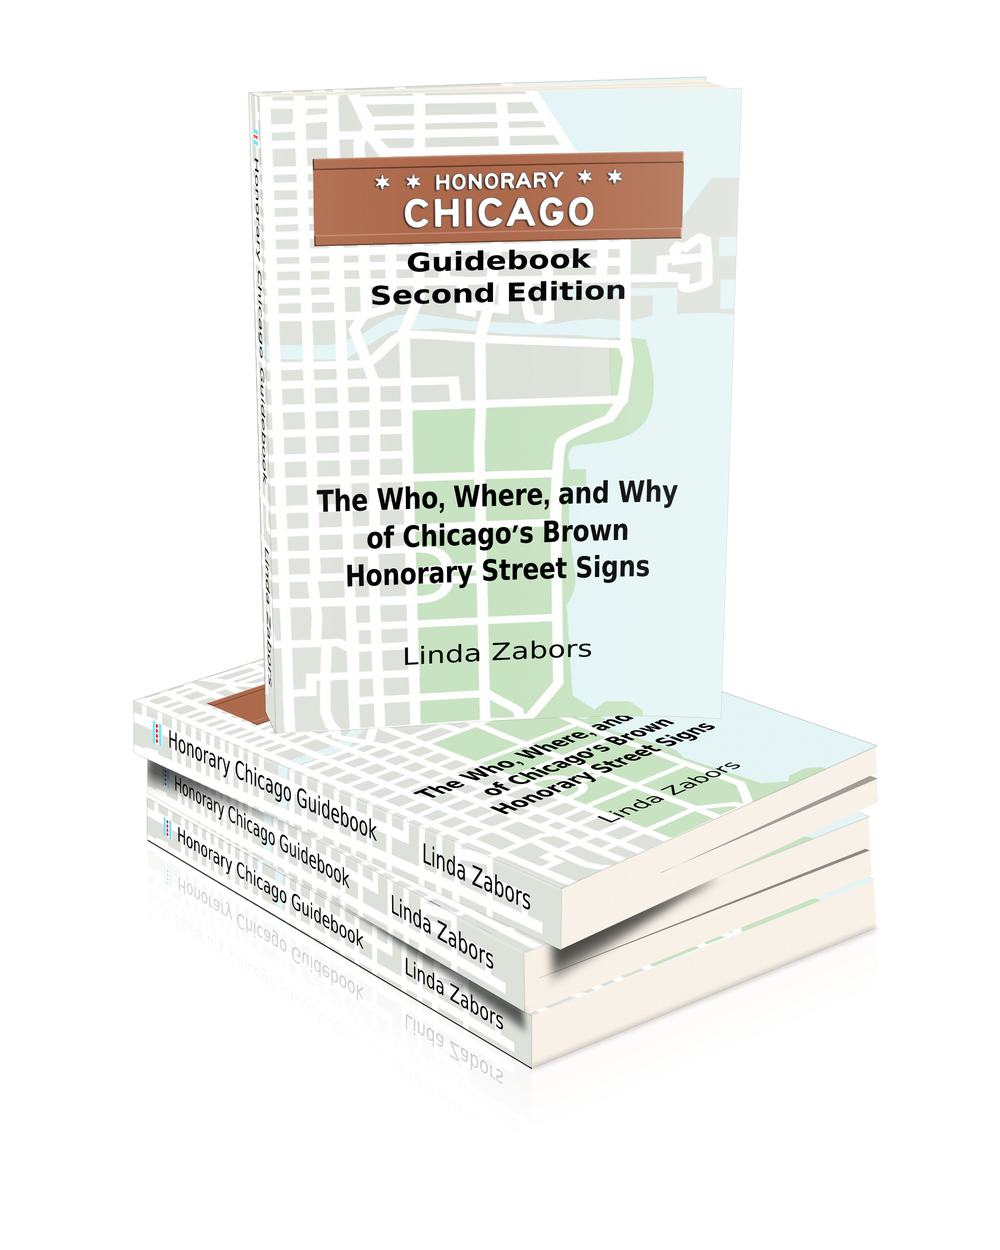 Honorary Chicago Guidebook 2nd edition